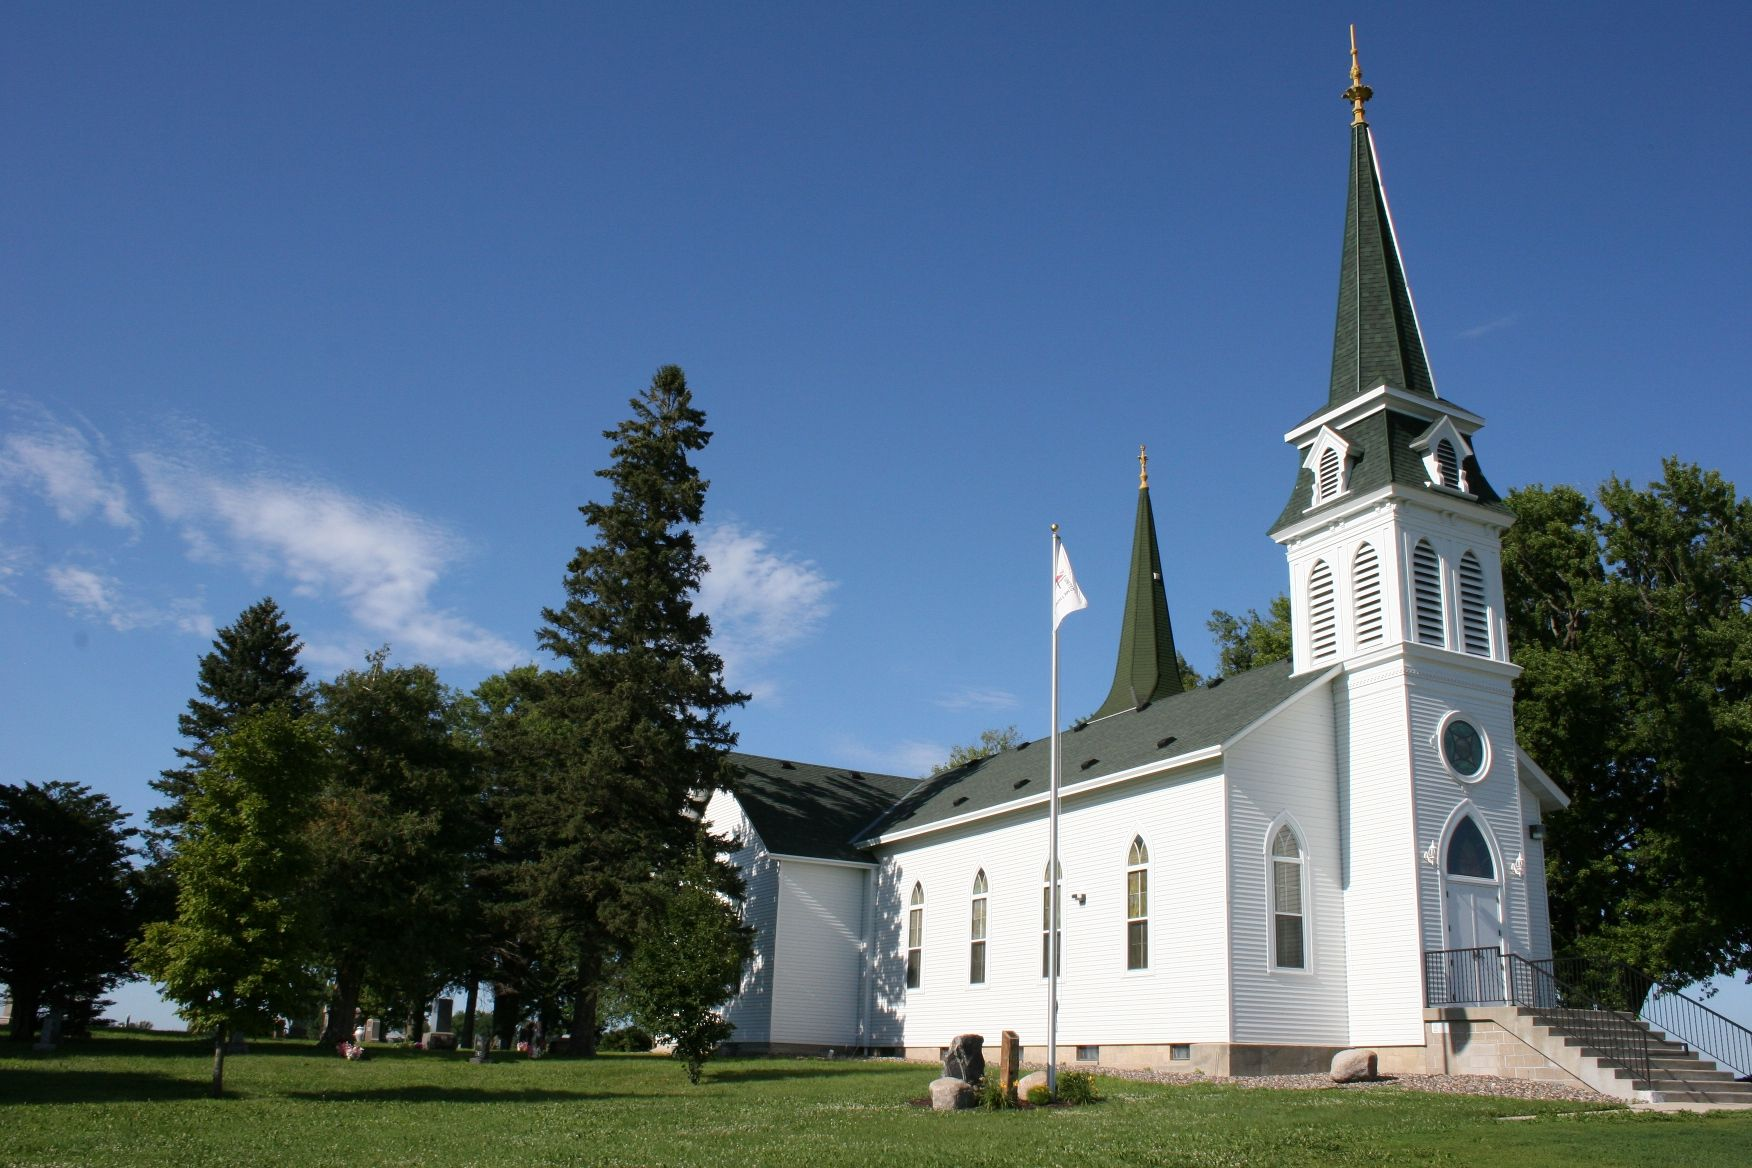 grace lutheran church Nerstrand, MN - Google Search